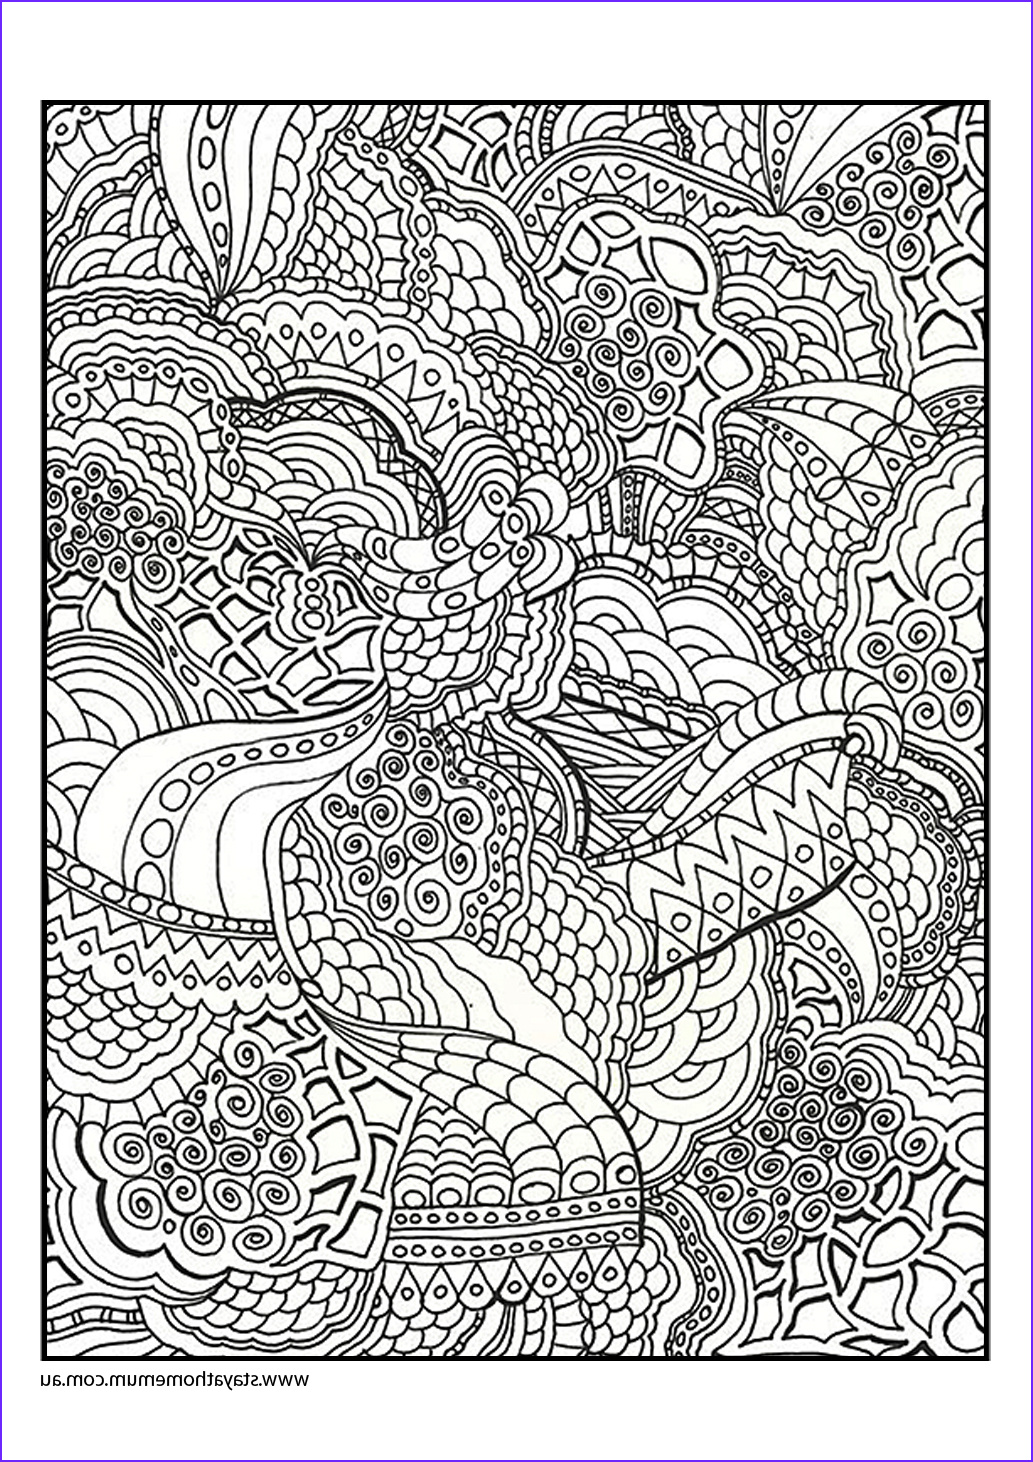 Coloring Pictures for Adults New Photos Printable Colouring Pages for Kids and Adults